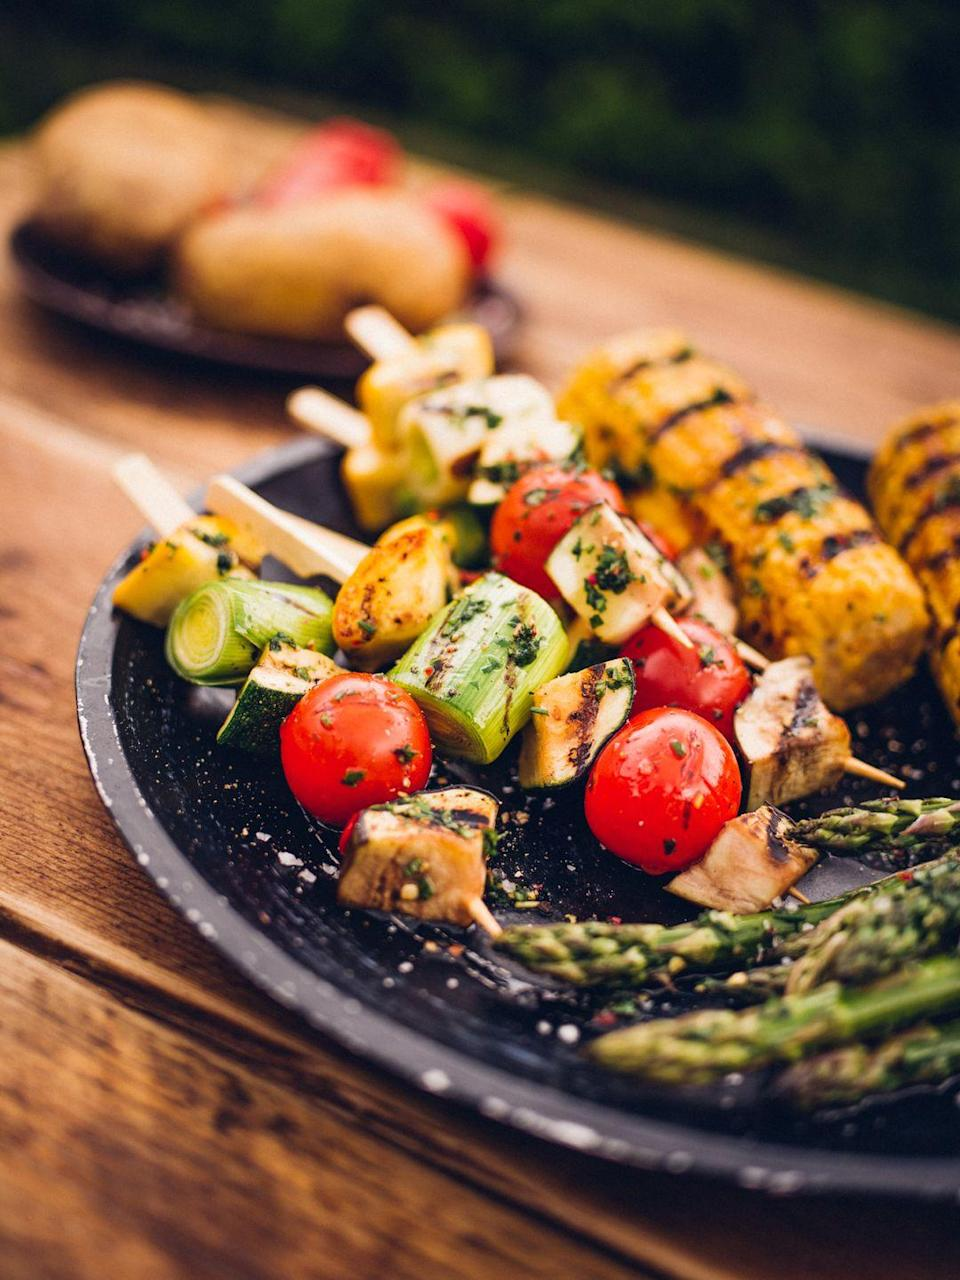 <p>Make sure you do that extra bit of prep before your BBQ and have a big bowl of marinade next to you to brush onto any of your veggies whilst they're charring away on the grill. </p><p>You can use any flavours you like. I personally love either a curried plant-based yoghurt marinade or a herby lemon mix – they both massively enhance the flavour of the veggies.</p>